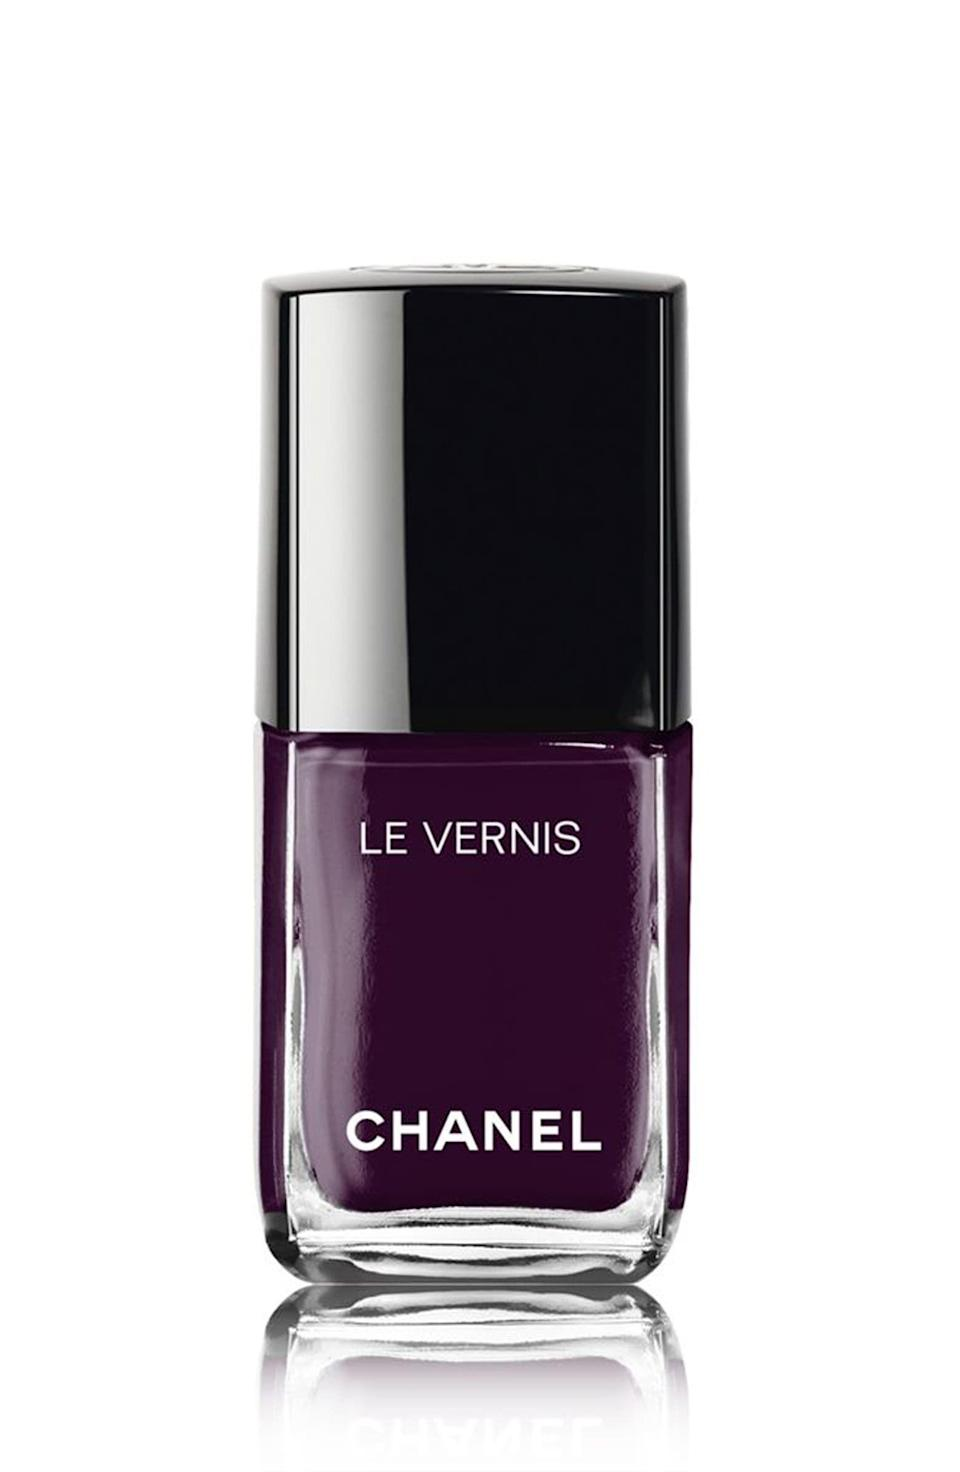 """<p><strong>Chanel</strong></p><p>nordstrom.com</p><p><strong>$28.00</strong></p><p><a href=""""https://go.redirectingat.com?id=74968X1596630&url=https%3A%2F%2Fwww.nordstrom.com%2Fs%2Fchanel-le-vernis-longwear-nail-colour%2F4296192&sref=https%3A%2F%2Fwww.marieclaire.com%2Fbeauty%2Fnews%2Fg3310%2Fbest-nail-colors-winter%2F"""" rel=""""nofollow noopener"""" target=""""_blank"""" data-ylk=""""slk:SHOP IT"""" class=""""link rapid-noclick-resp"""">SHOP IT</a></p><p>'Tis the season to be moody, and this elegant color injects a little bit of darkness into your wardrobe without going fully gothic. </p>"""